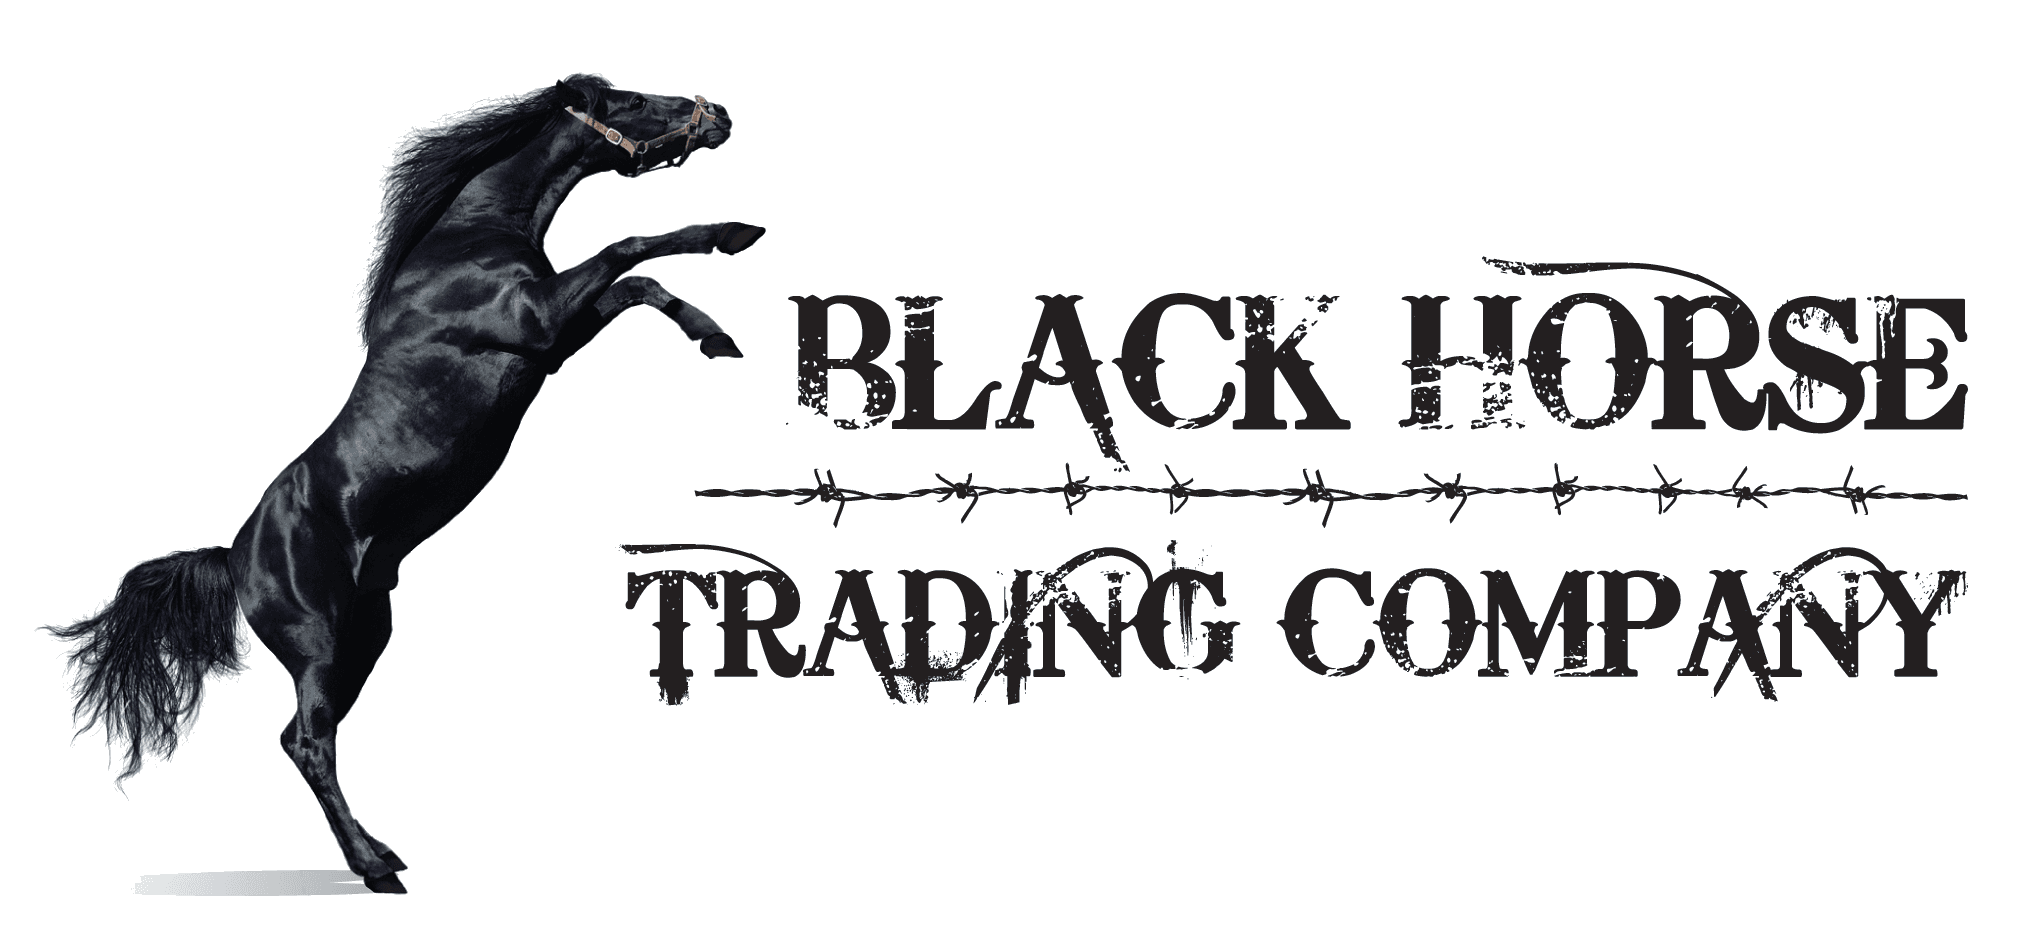 Black Horse Logo | www.pixshark.com - Images Galleries ...